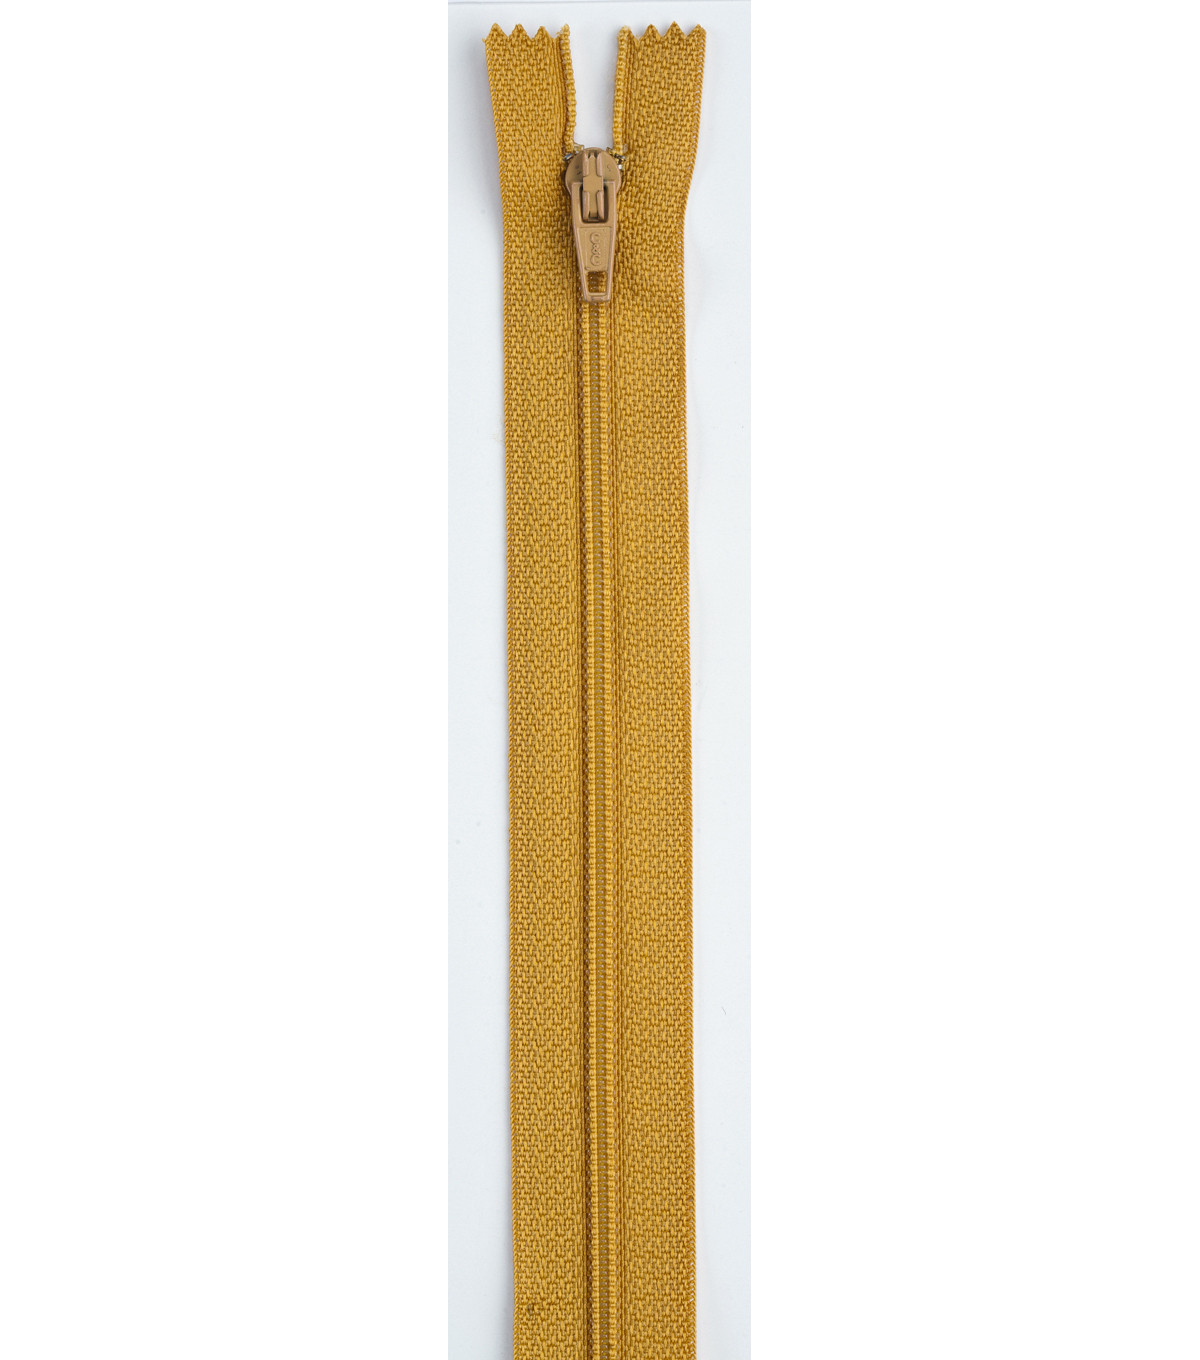 Coats & Clark All-Purpose Plastic Zipper 14\u0022 , Mine Gold